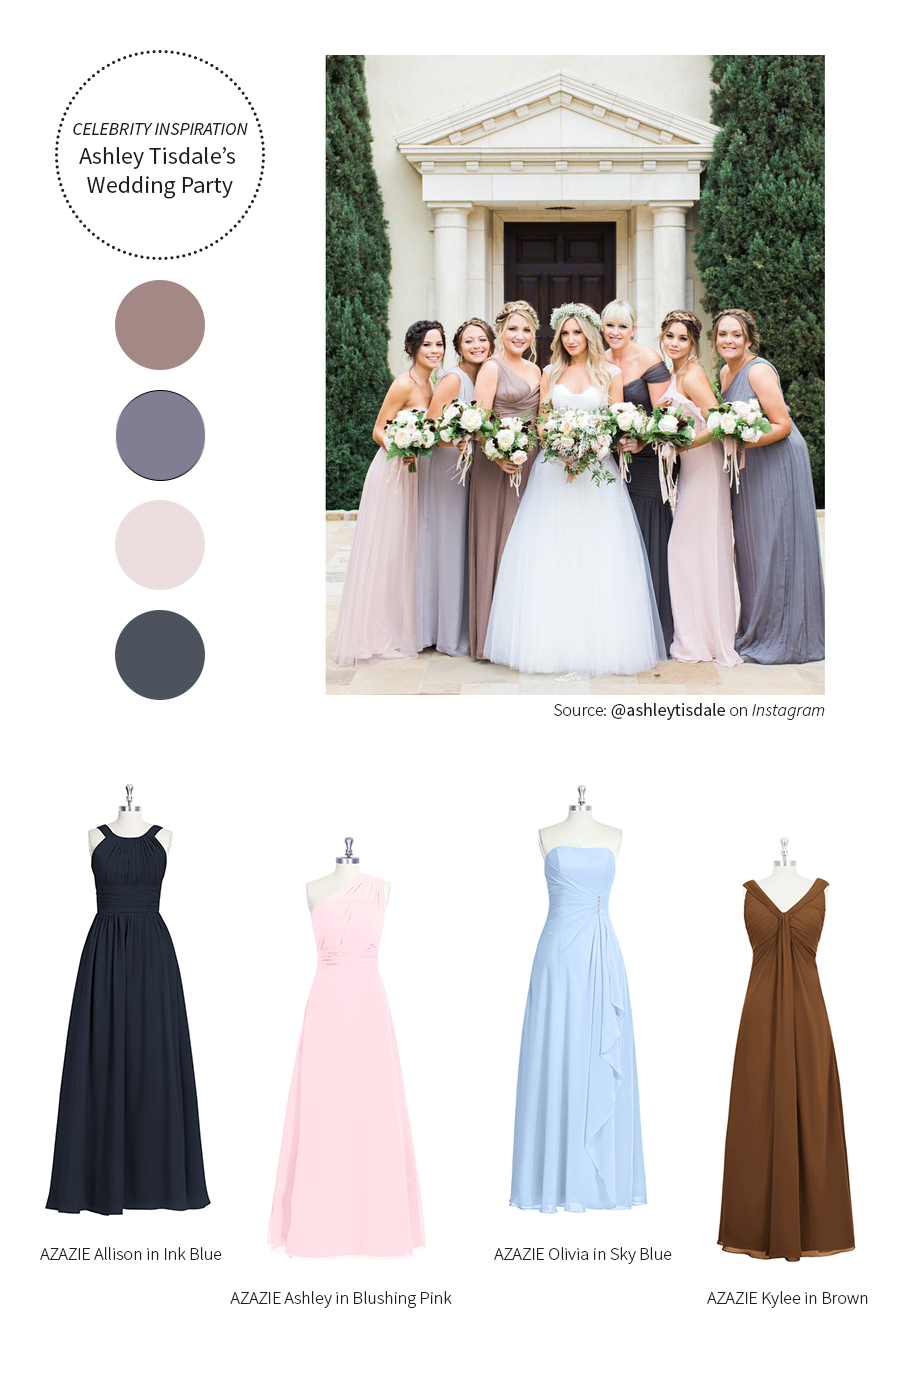 AZAZIE_Ashley_Tisdale_Inspiration_Bridesmaid_Dresses